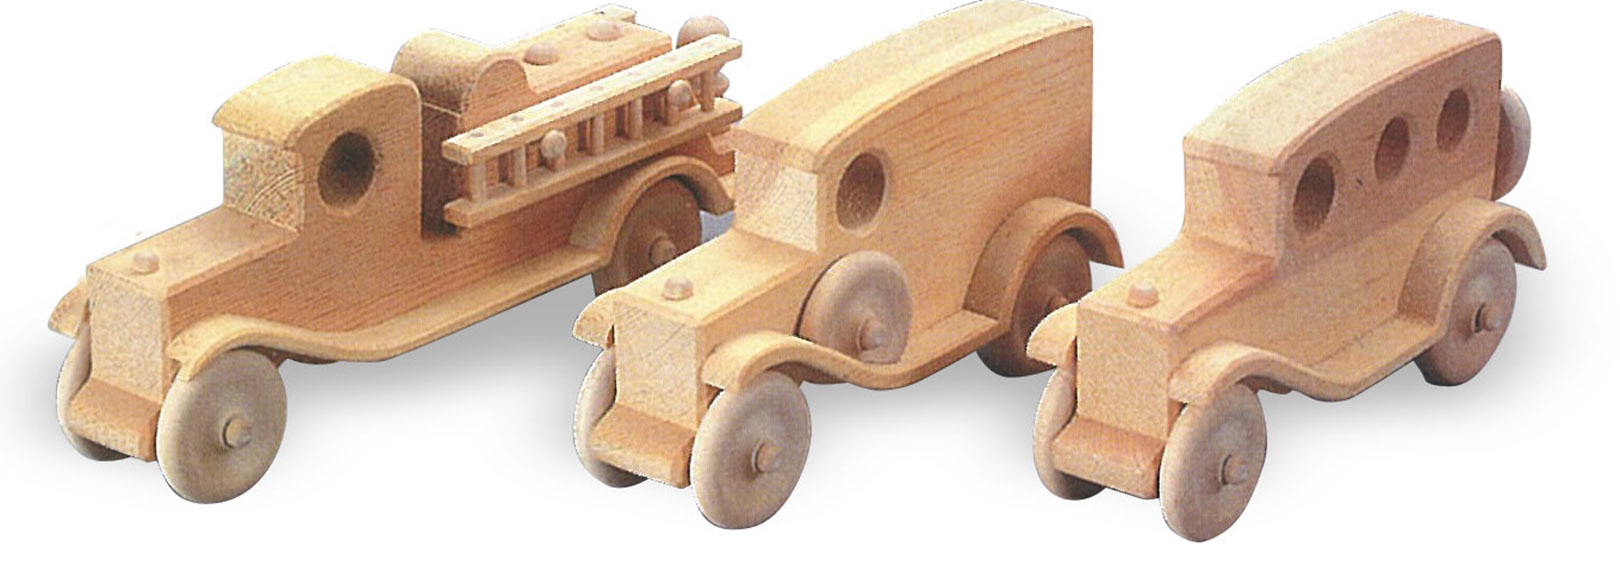 woodworking patterns for antique cars and trucks